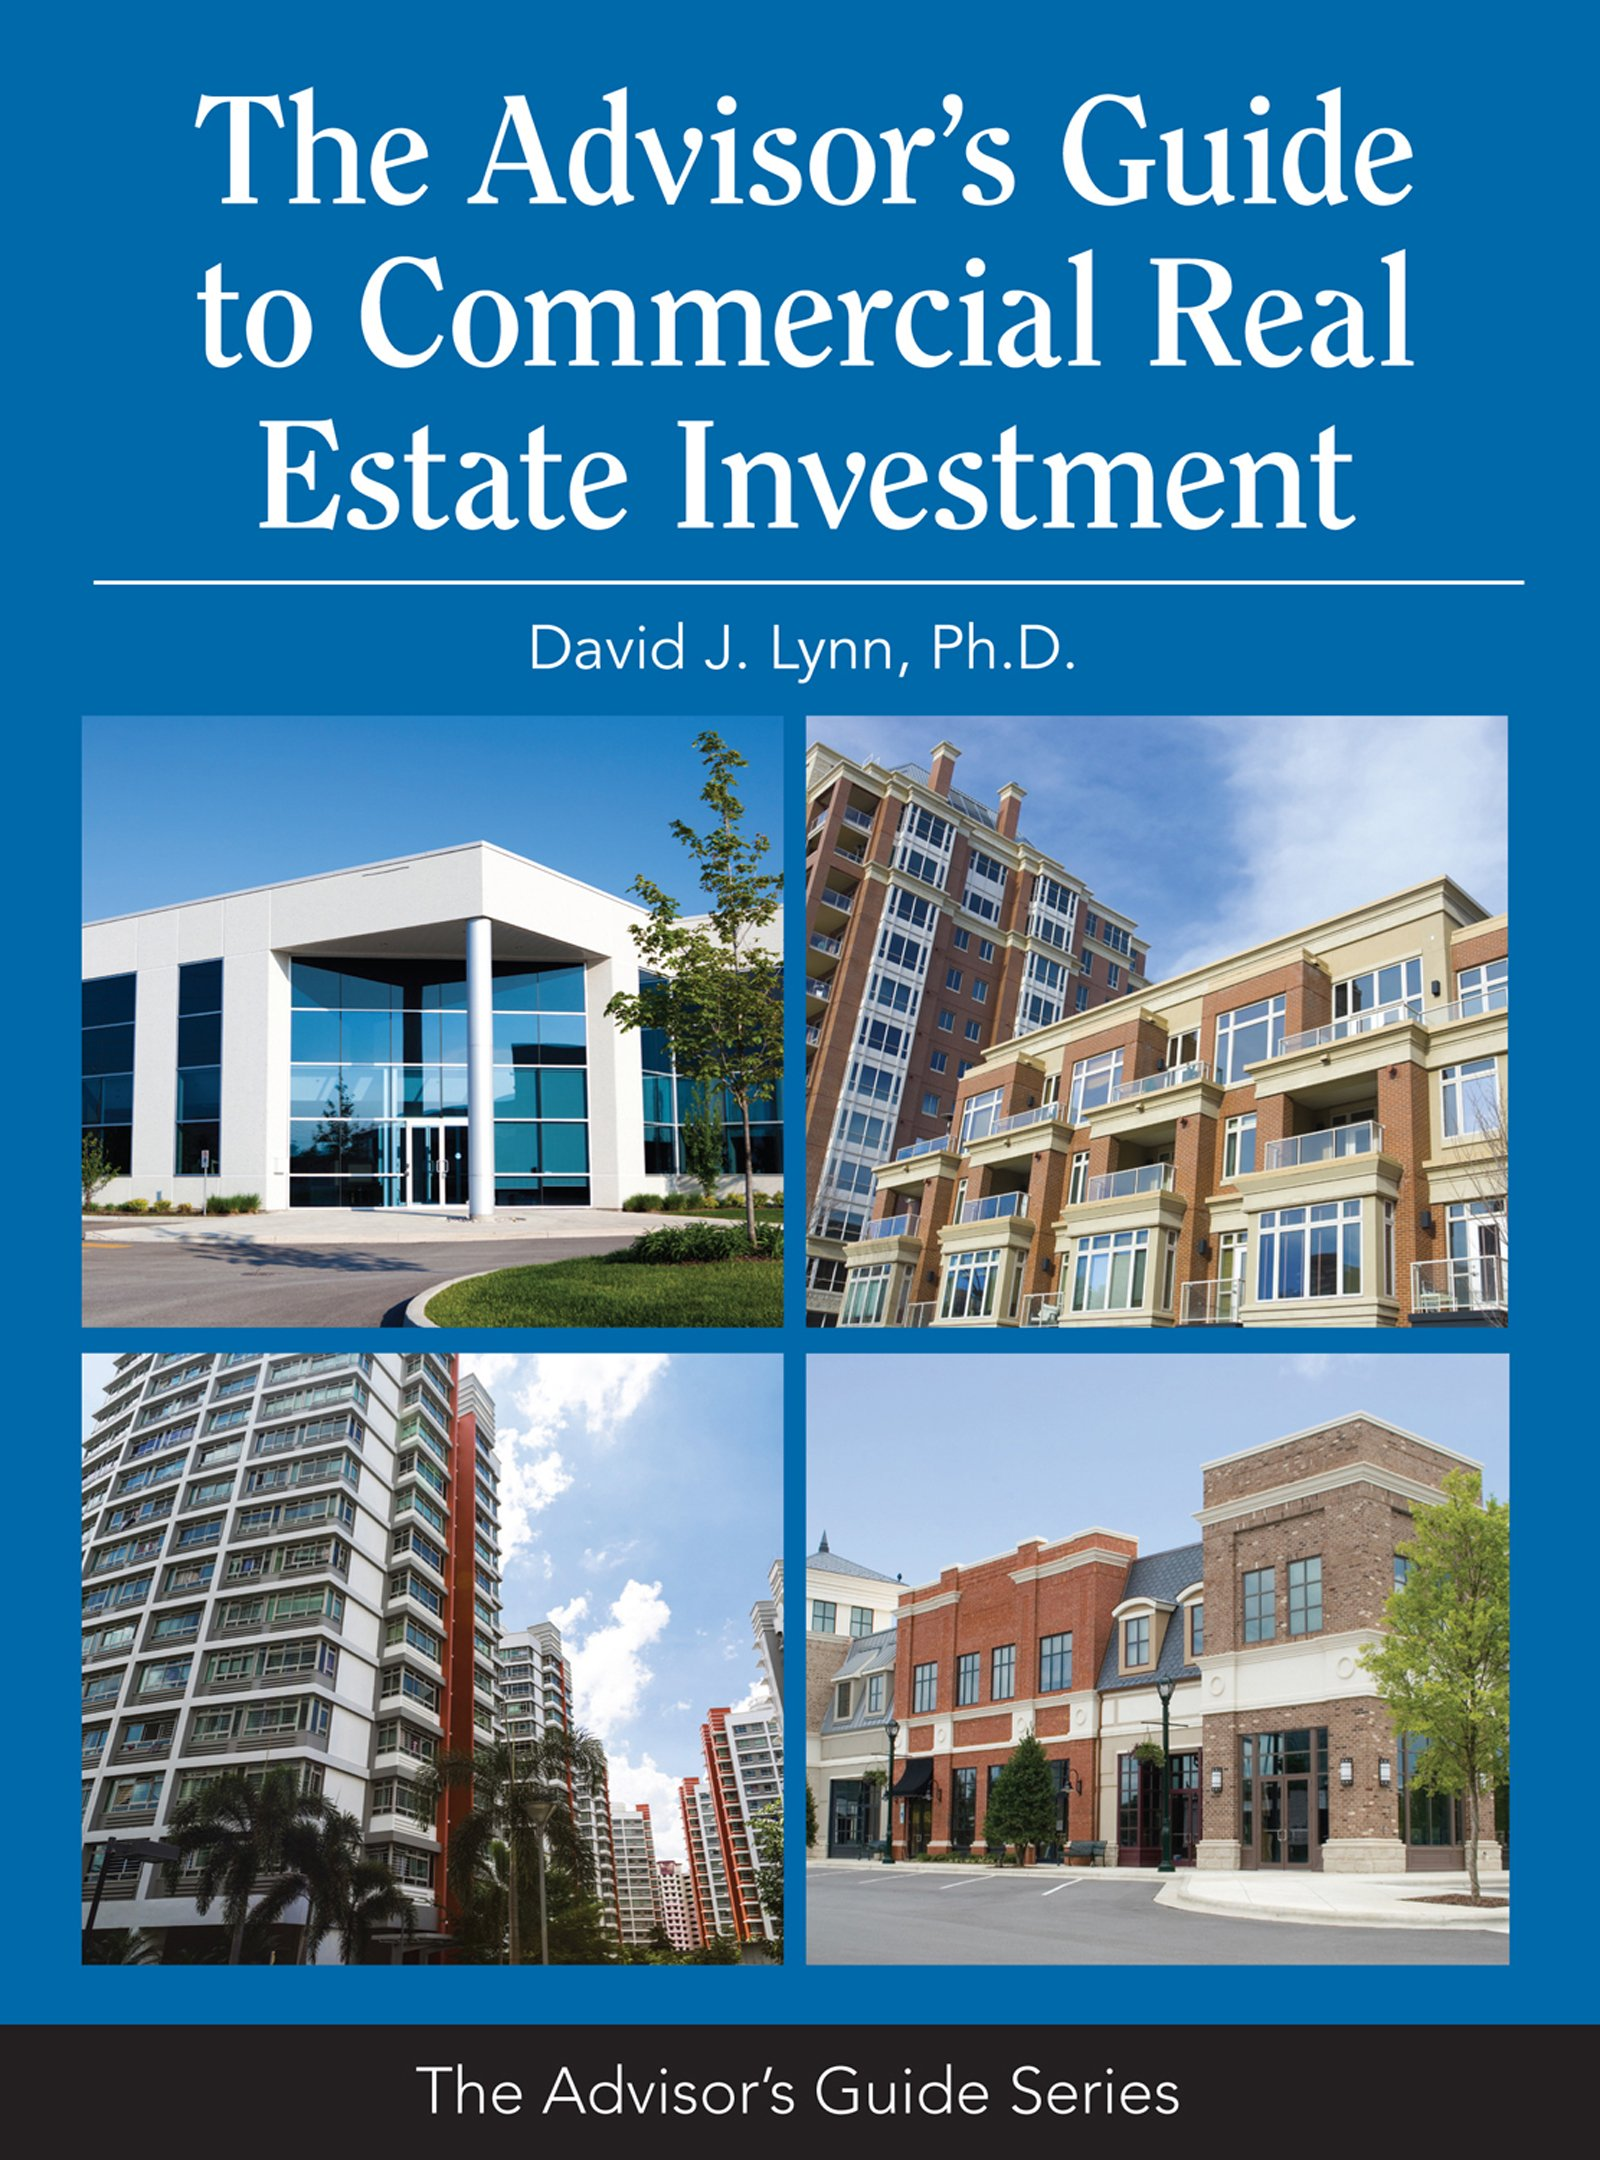 The Advisor's Guide to Commercial Real Estate Investment